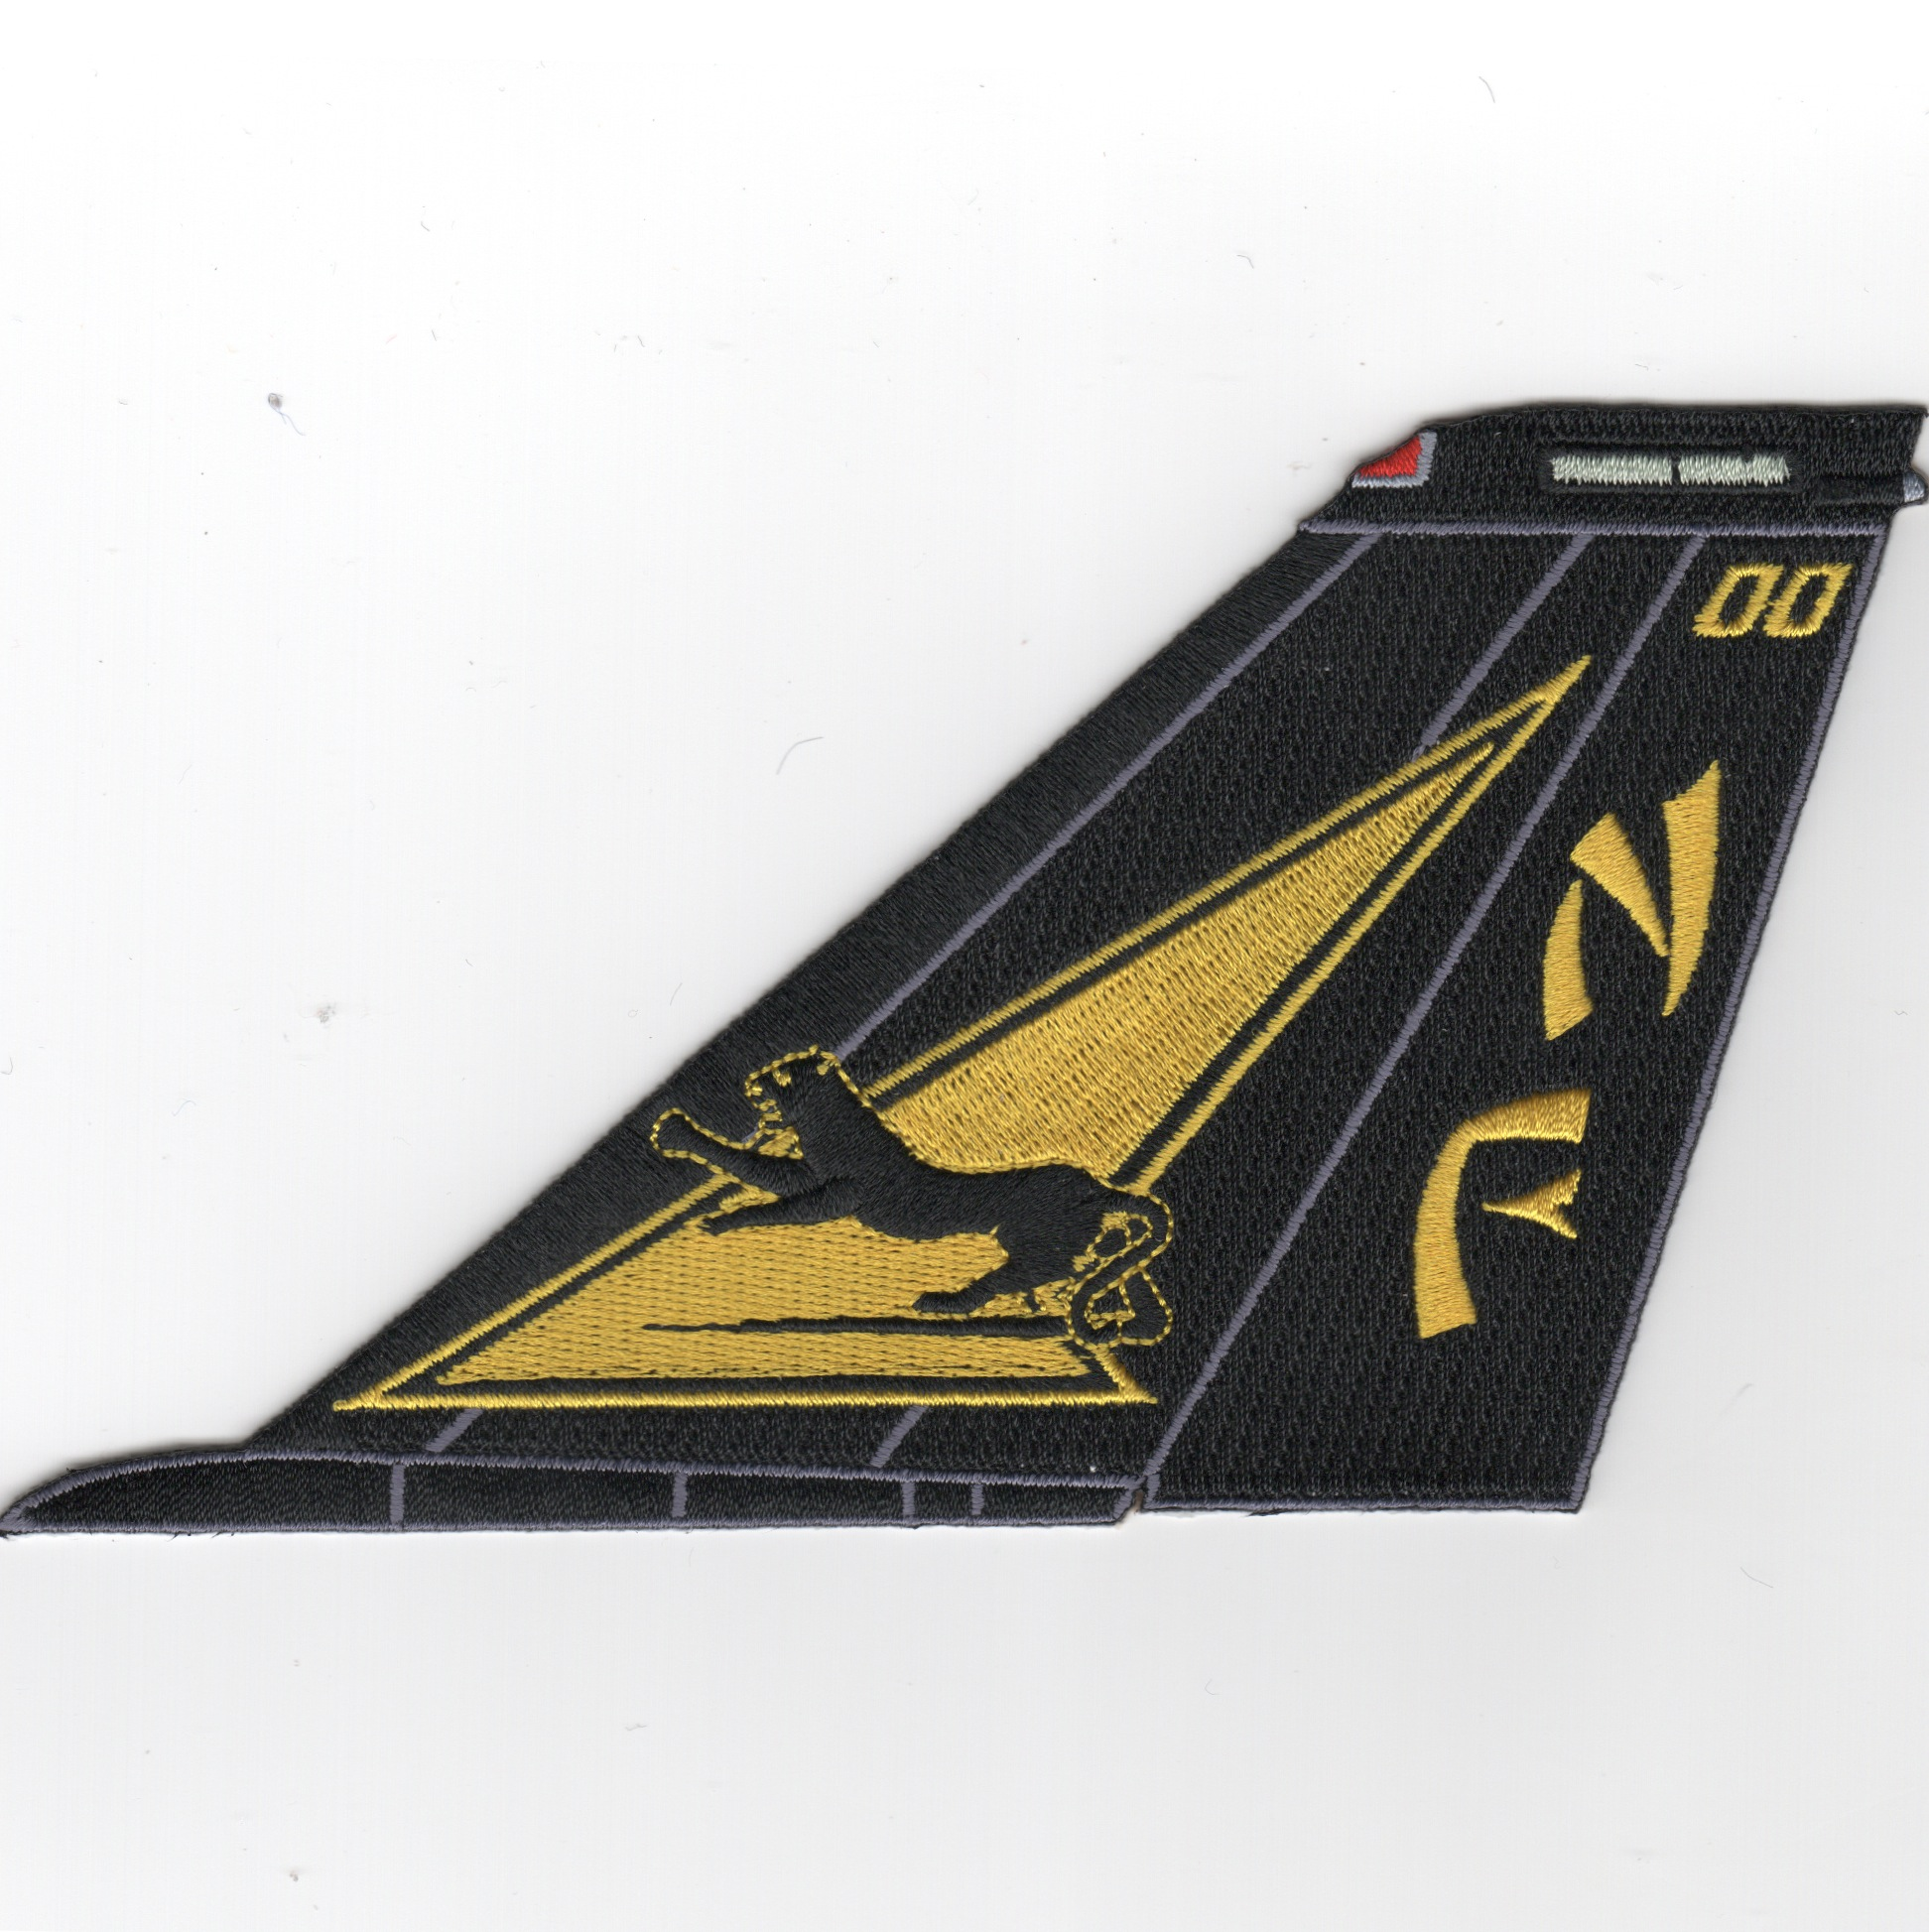 VF-21 F-14 Tomcat TailFin (No Text)